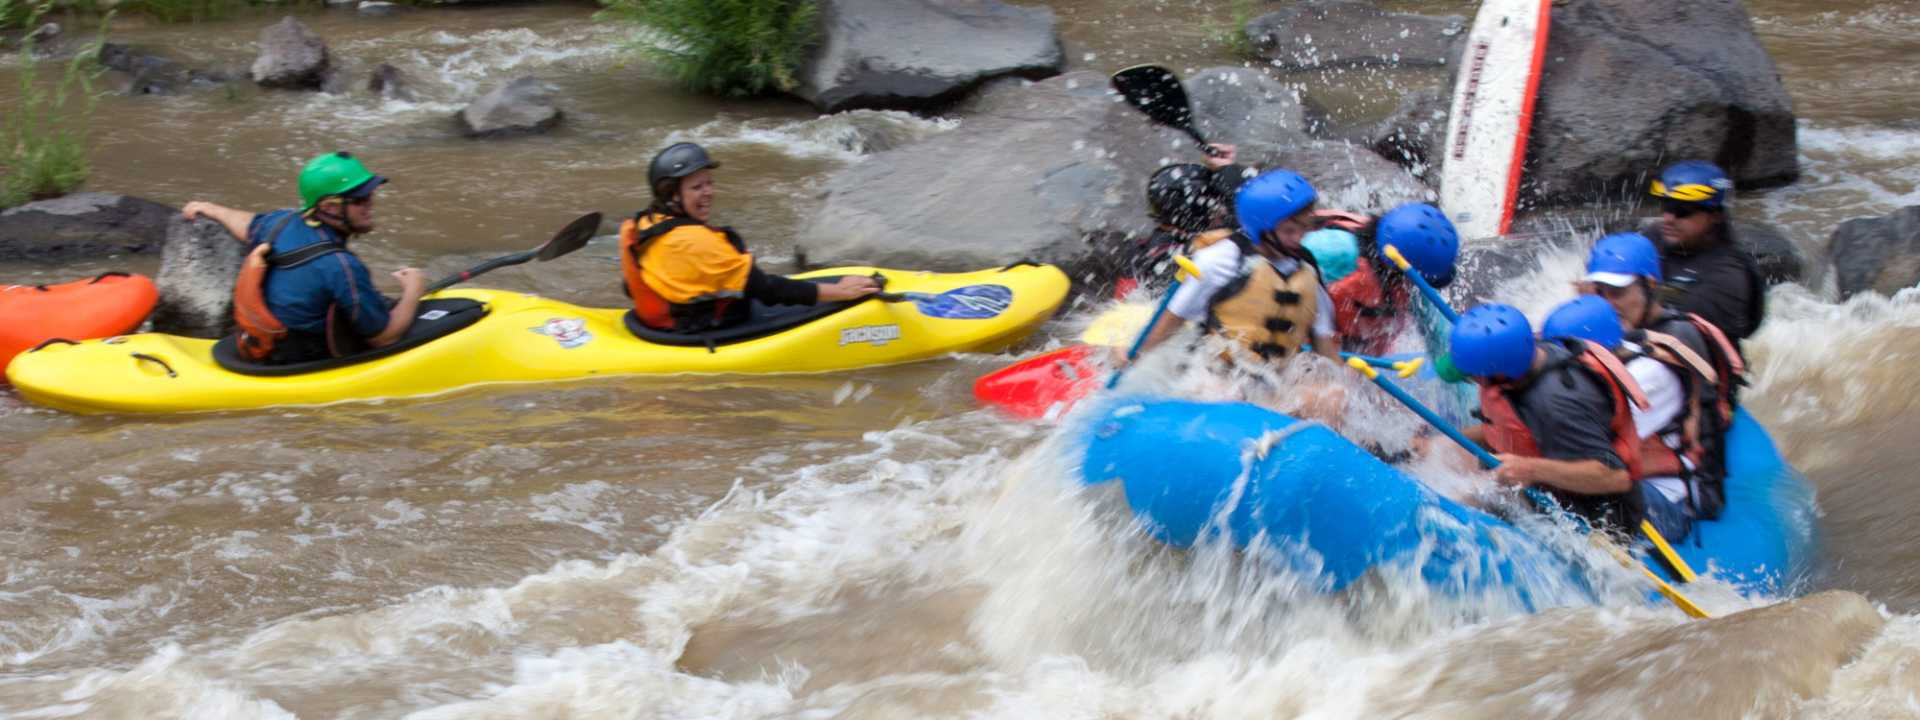 A group travels down the white-water rapids of the Rio Grande River via kayak and river raft.